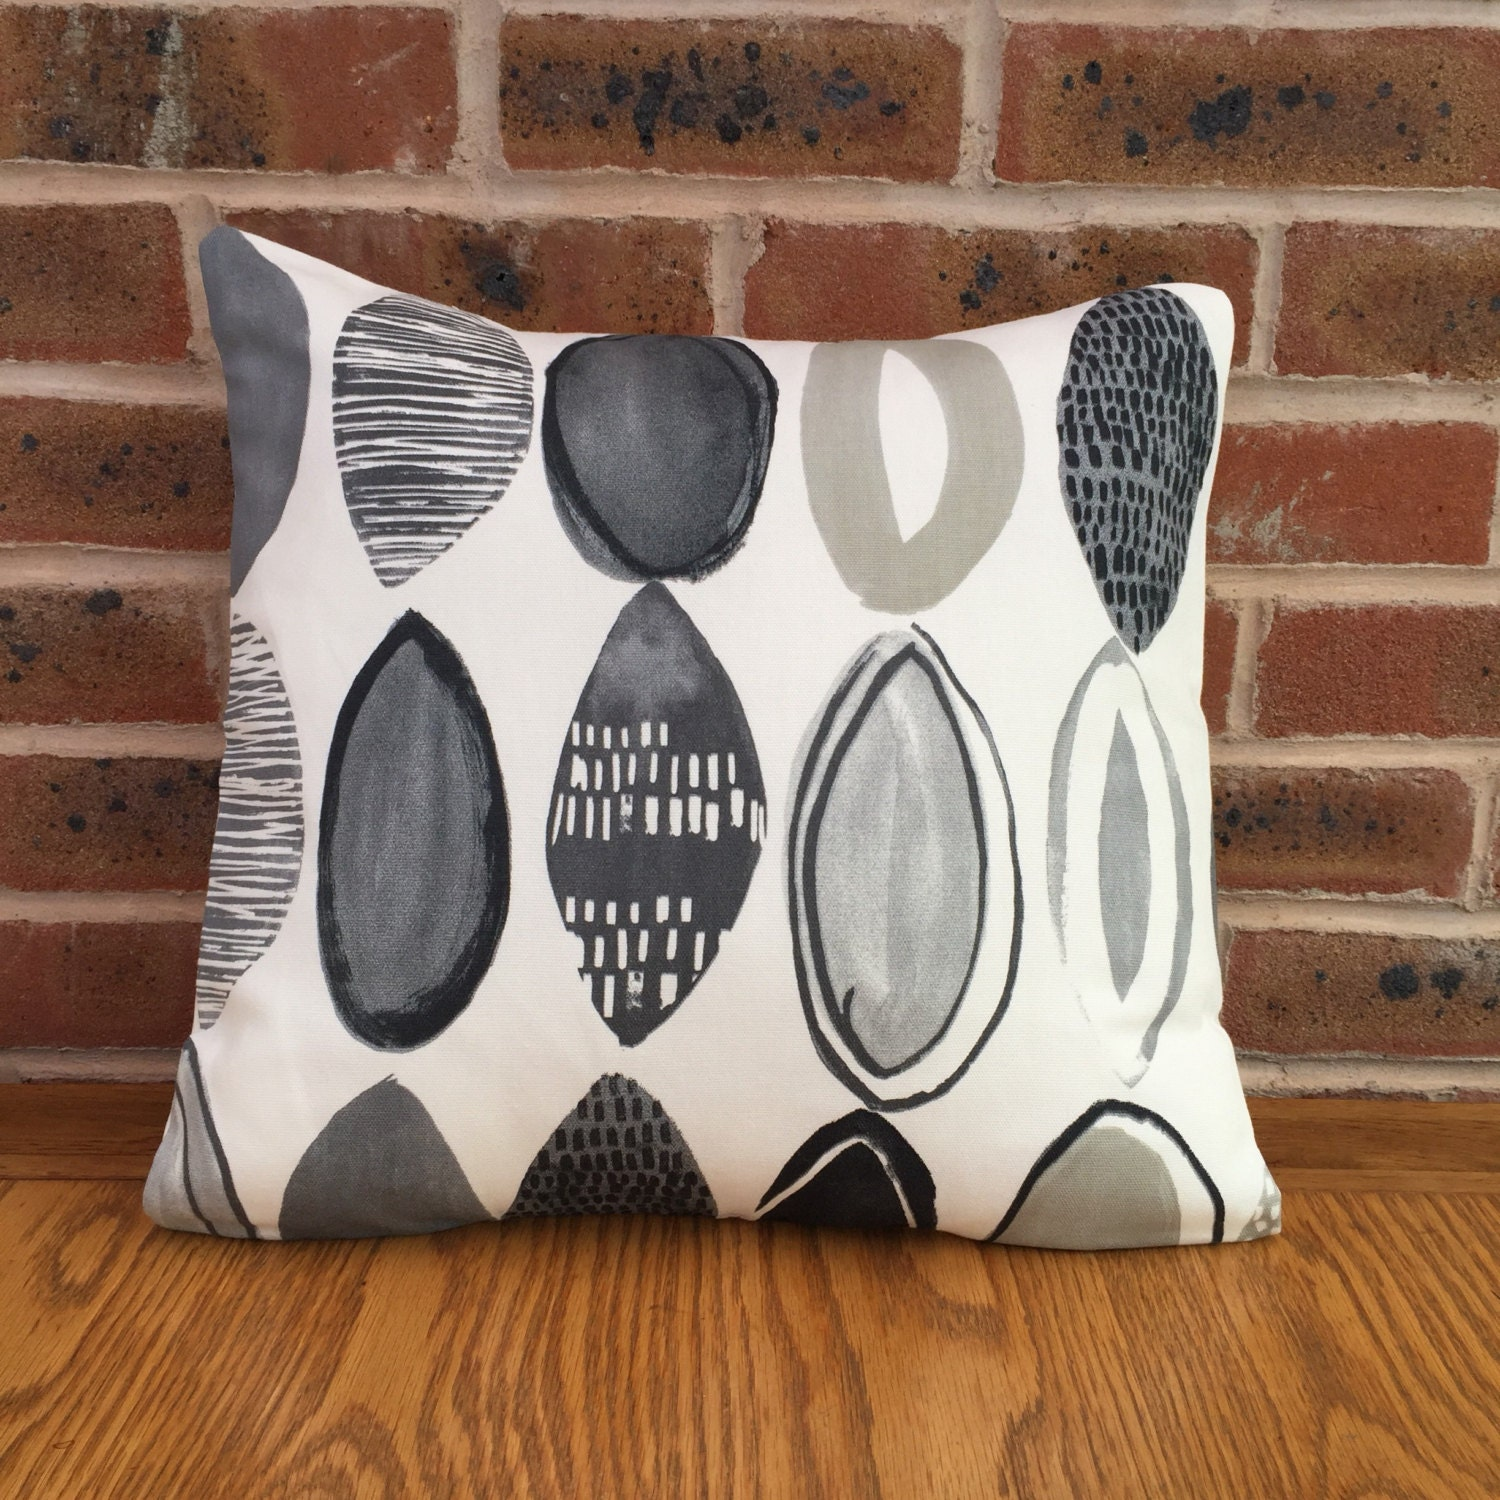 Black and Grey Paint Style Design Oval Shapes 16  40cm Geometric  Cushion Cover